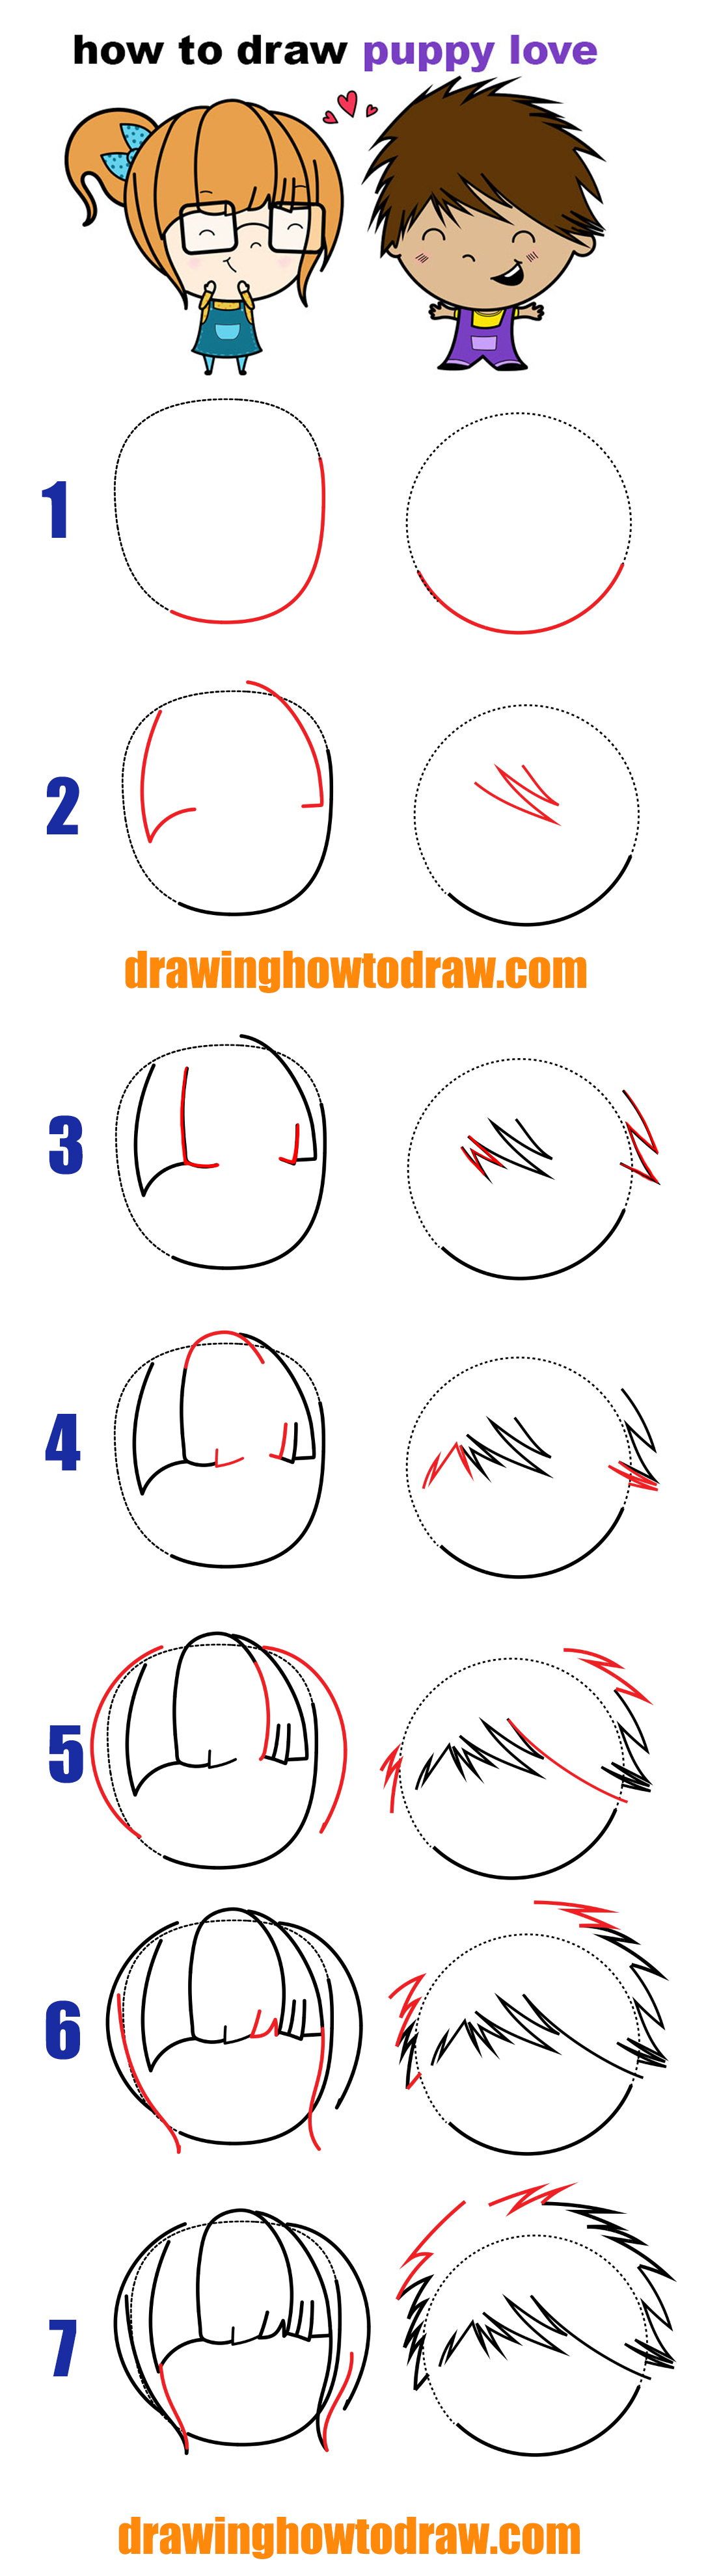 How To Draw A Boy And Girl In Love With Easy Step By Step Drawing